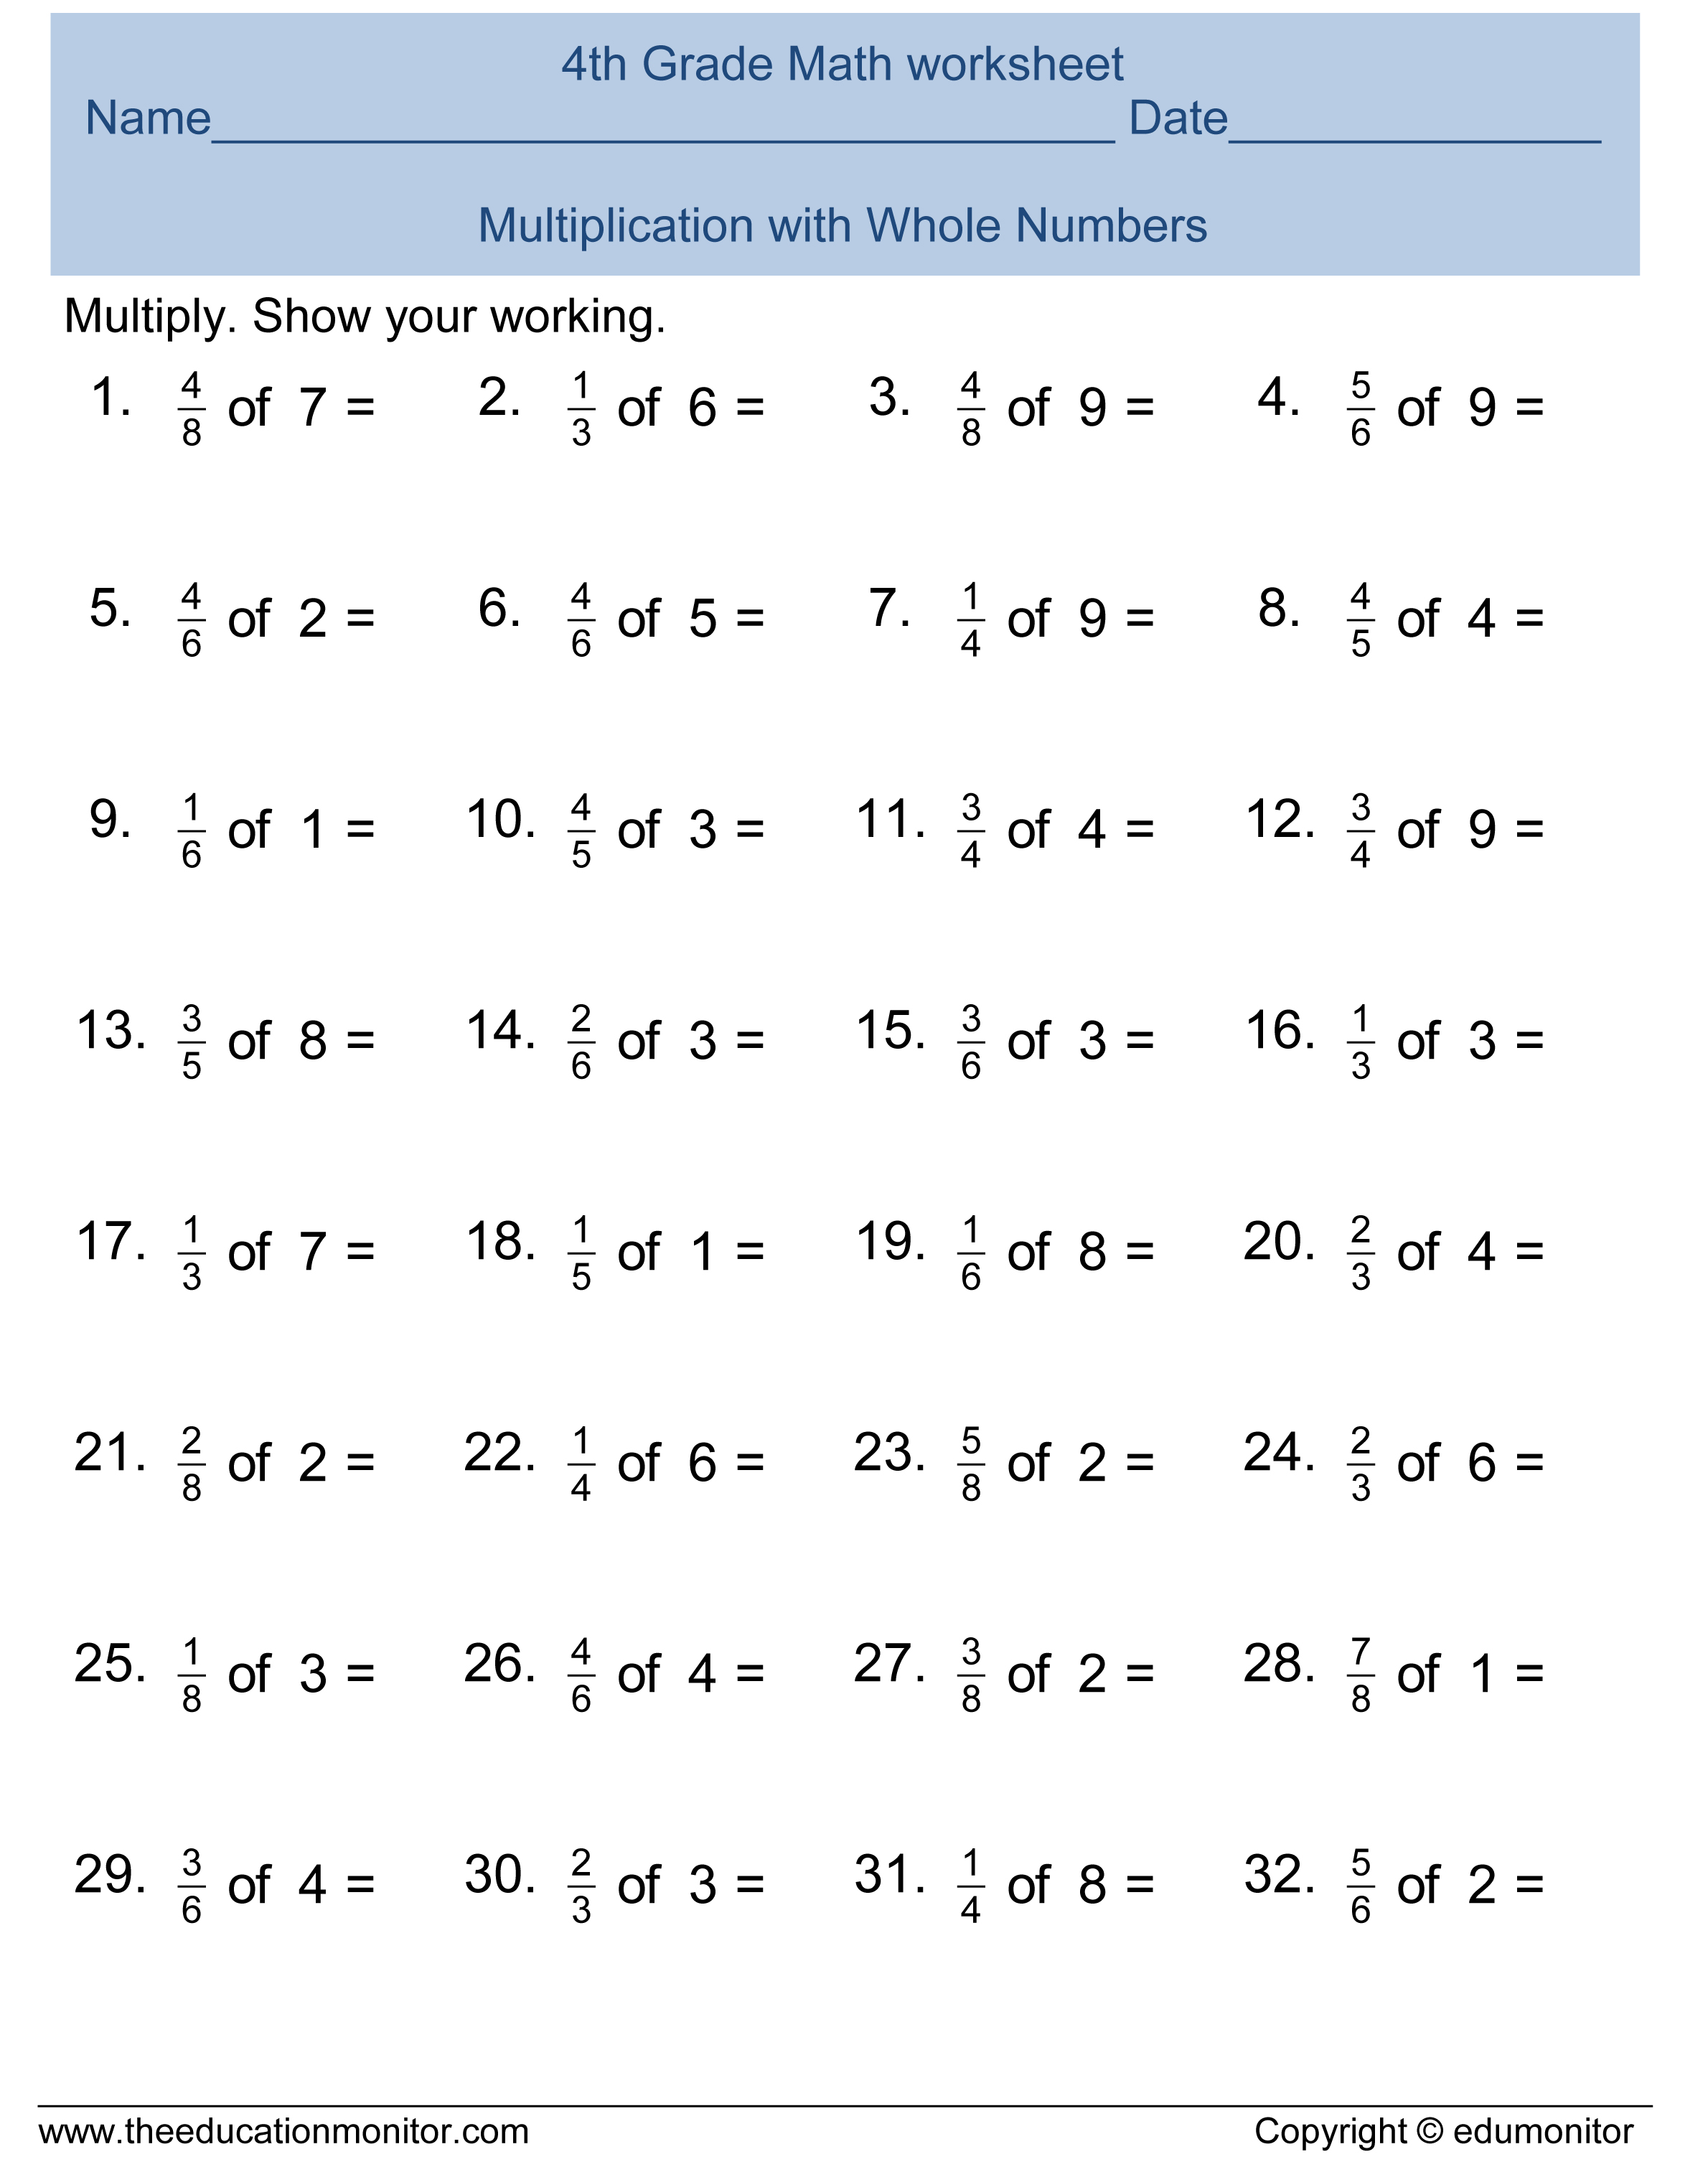 math worksheet : free printable worksheets for 4th grade : Free 4th Grade Math Worksheets